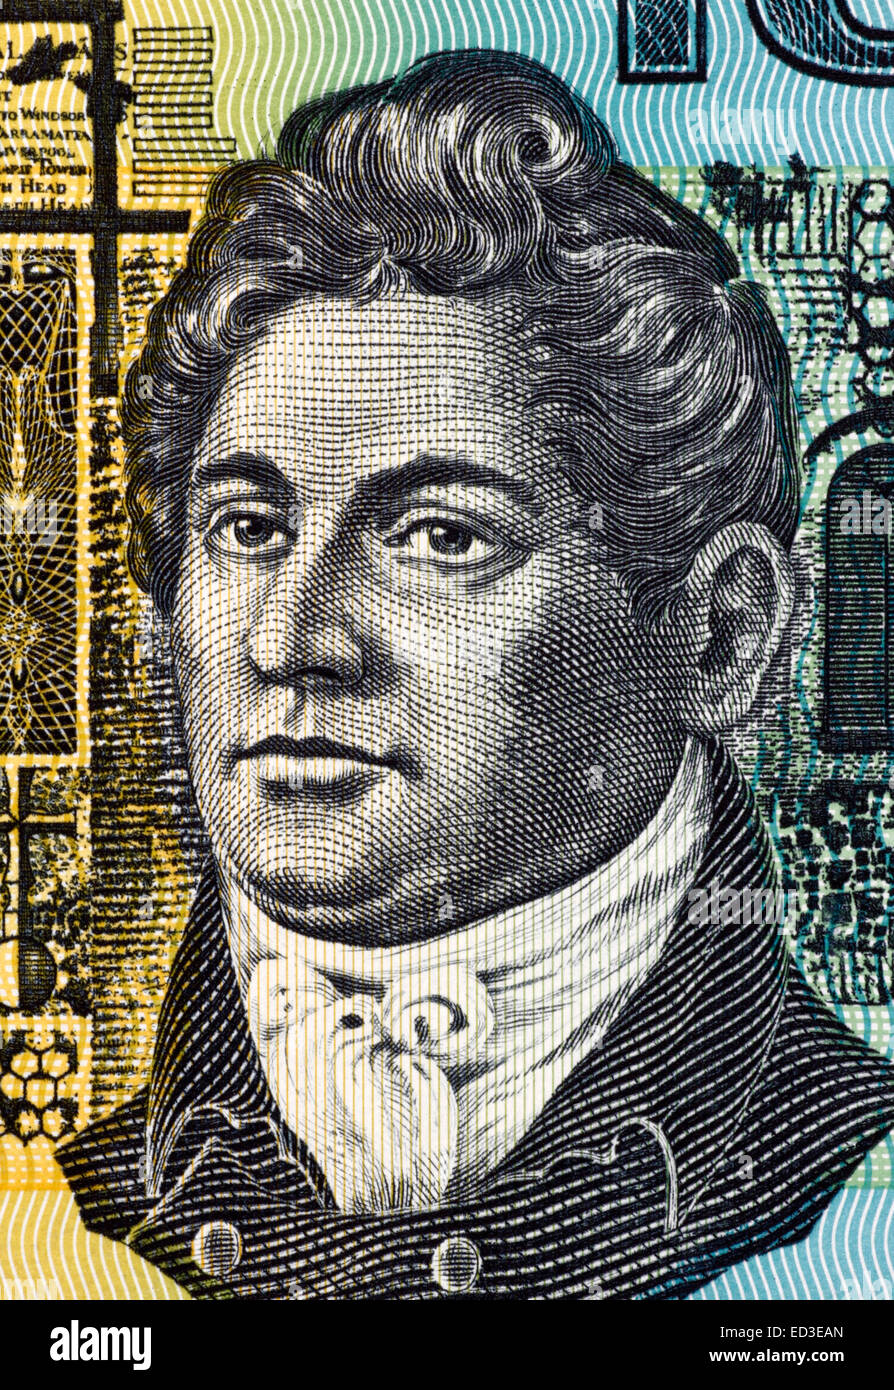 Francis Greenway (1777-1837) on 10 Dollars 1966 banknote from Australia. English-born architect who was transported - Stock Image